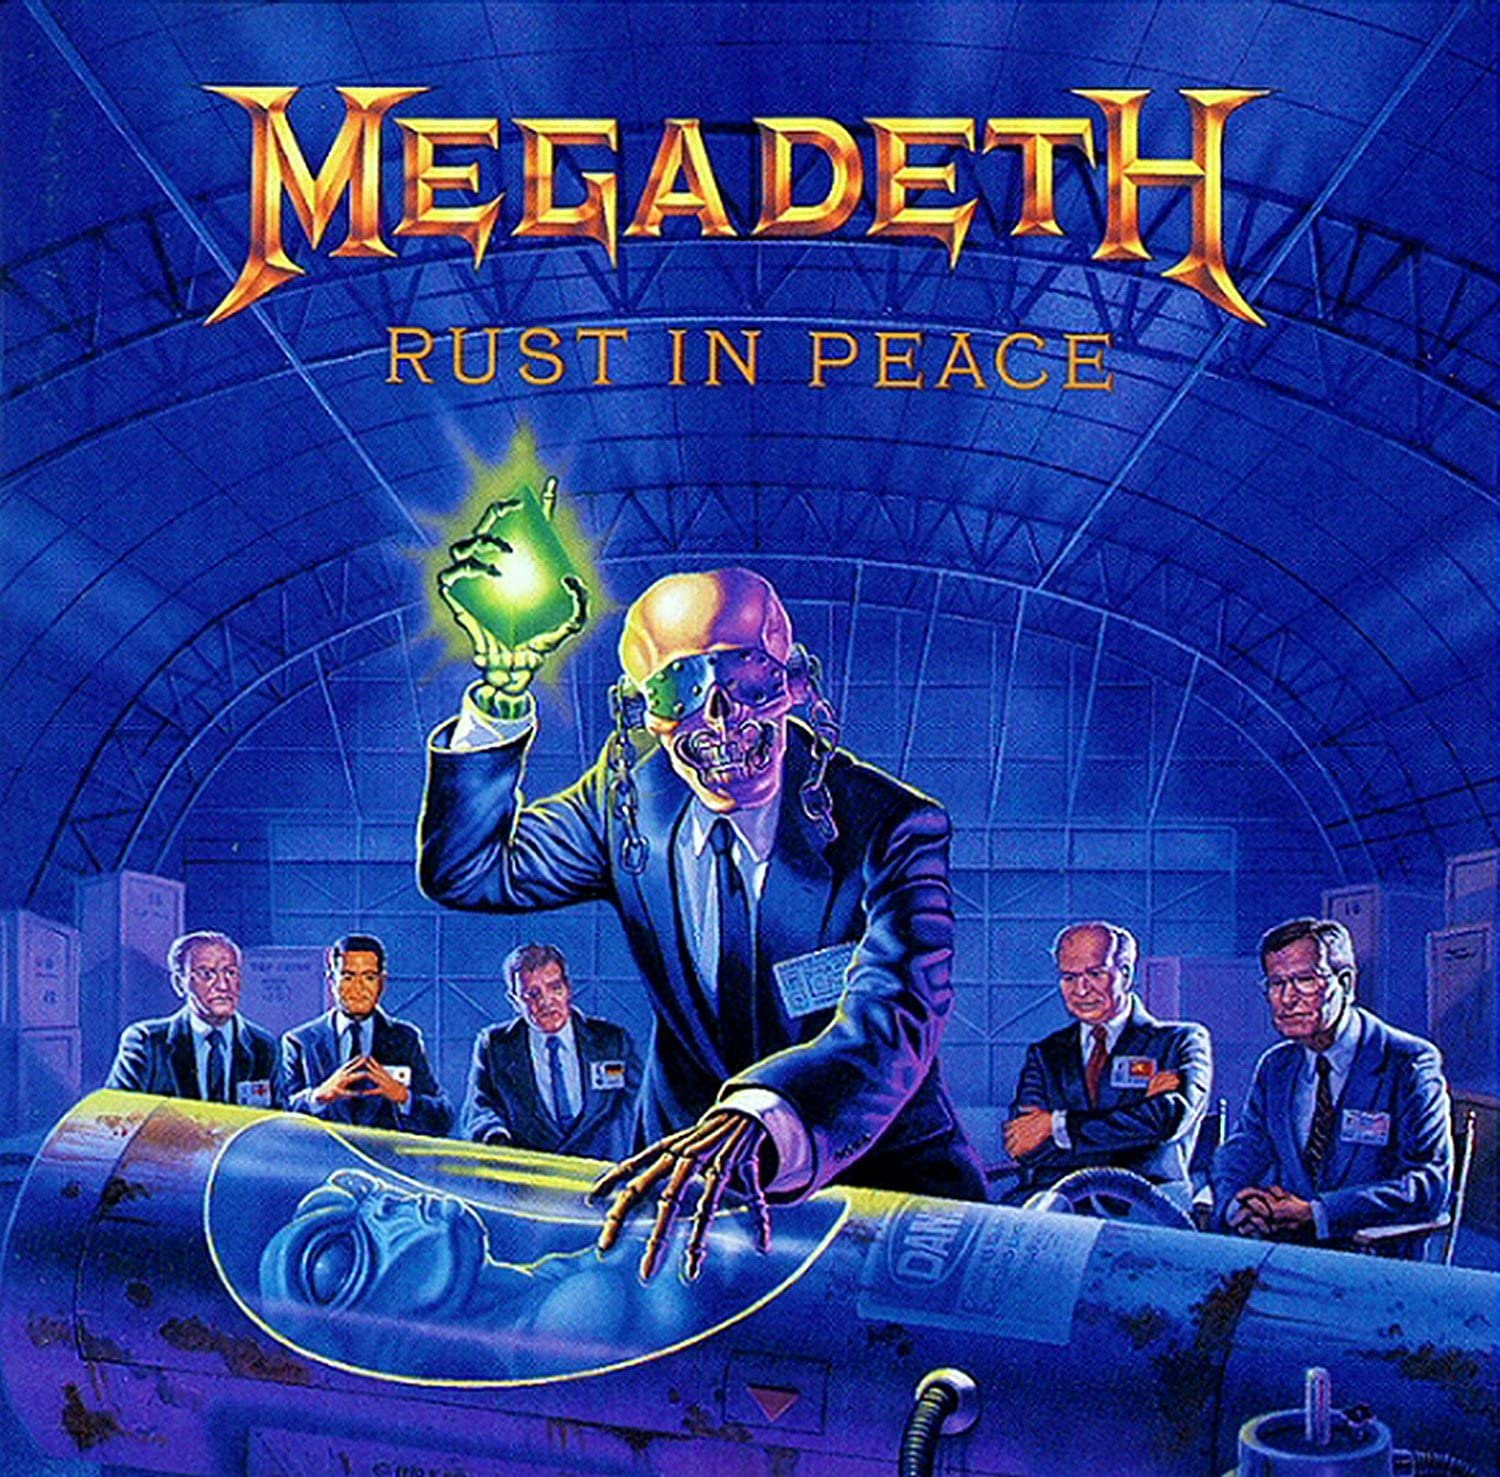 9.10 Megadeth - Rust in Peace